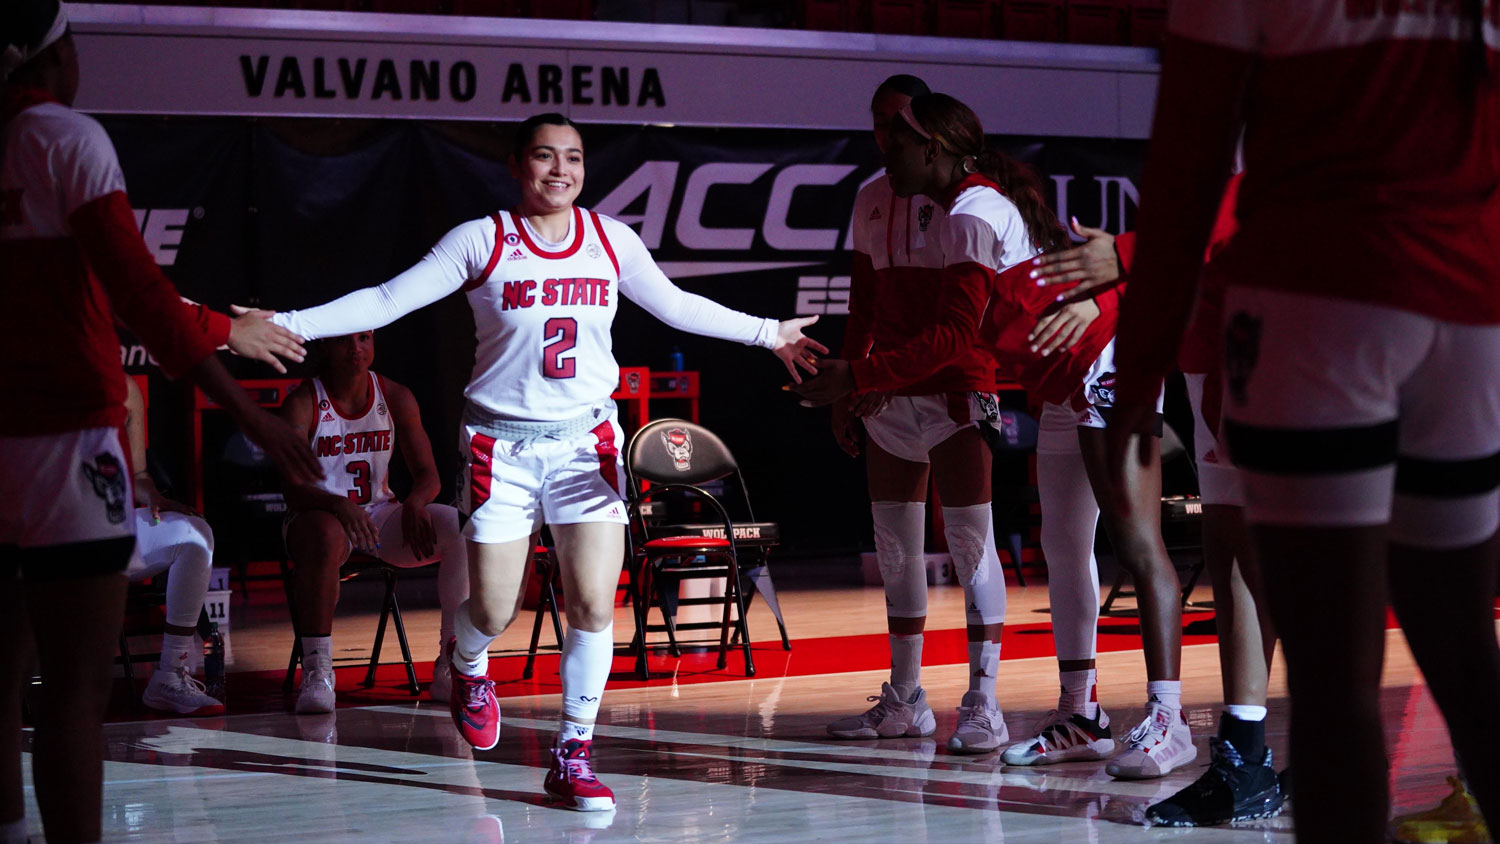 Raina Perez walking onto the basketball court before a game.